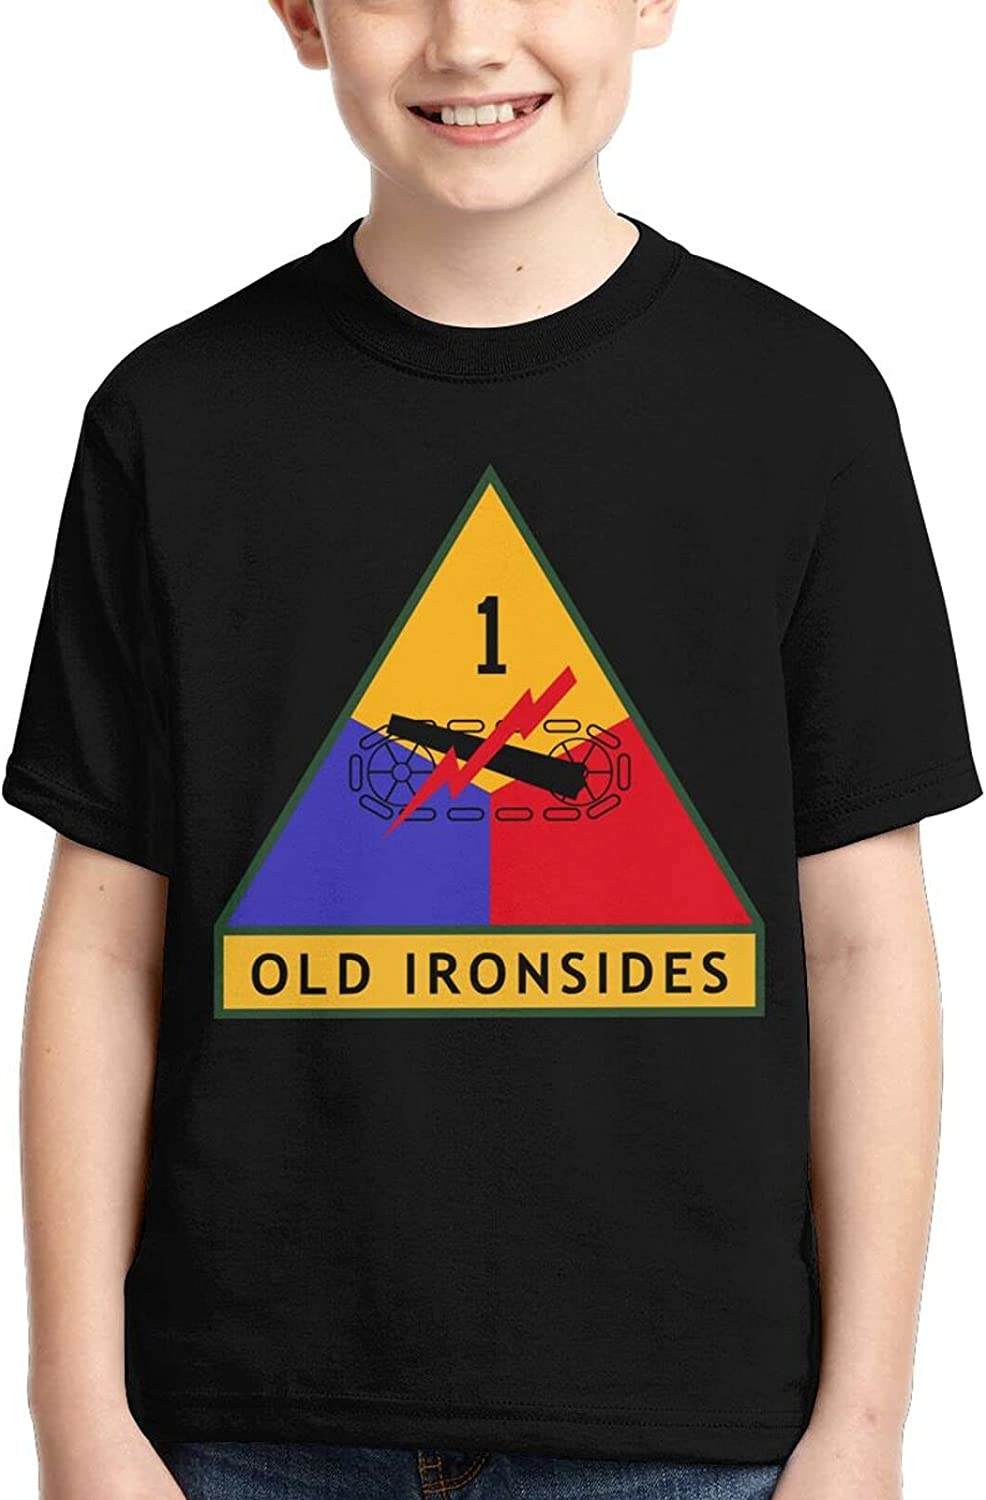 Army Old Ironsides Veteran 1st Armored Division Boys Kid Youth Tshirt Tee Casual Tee Cool T Shirt